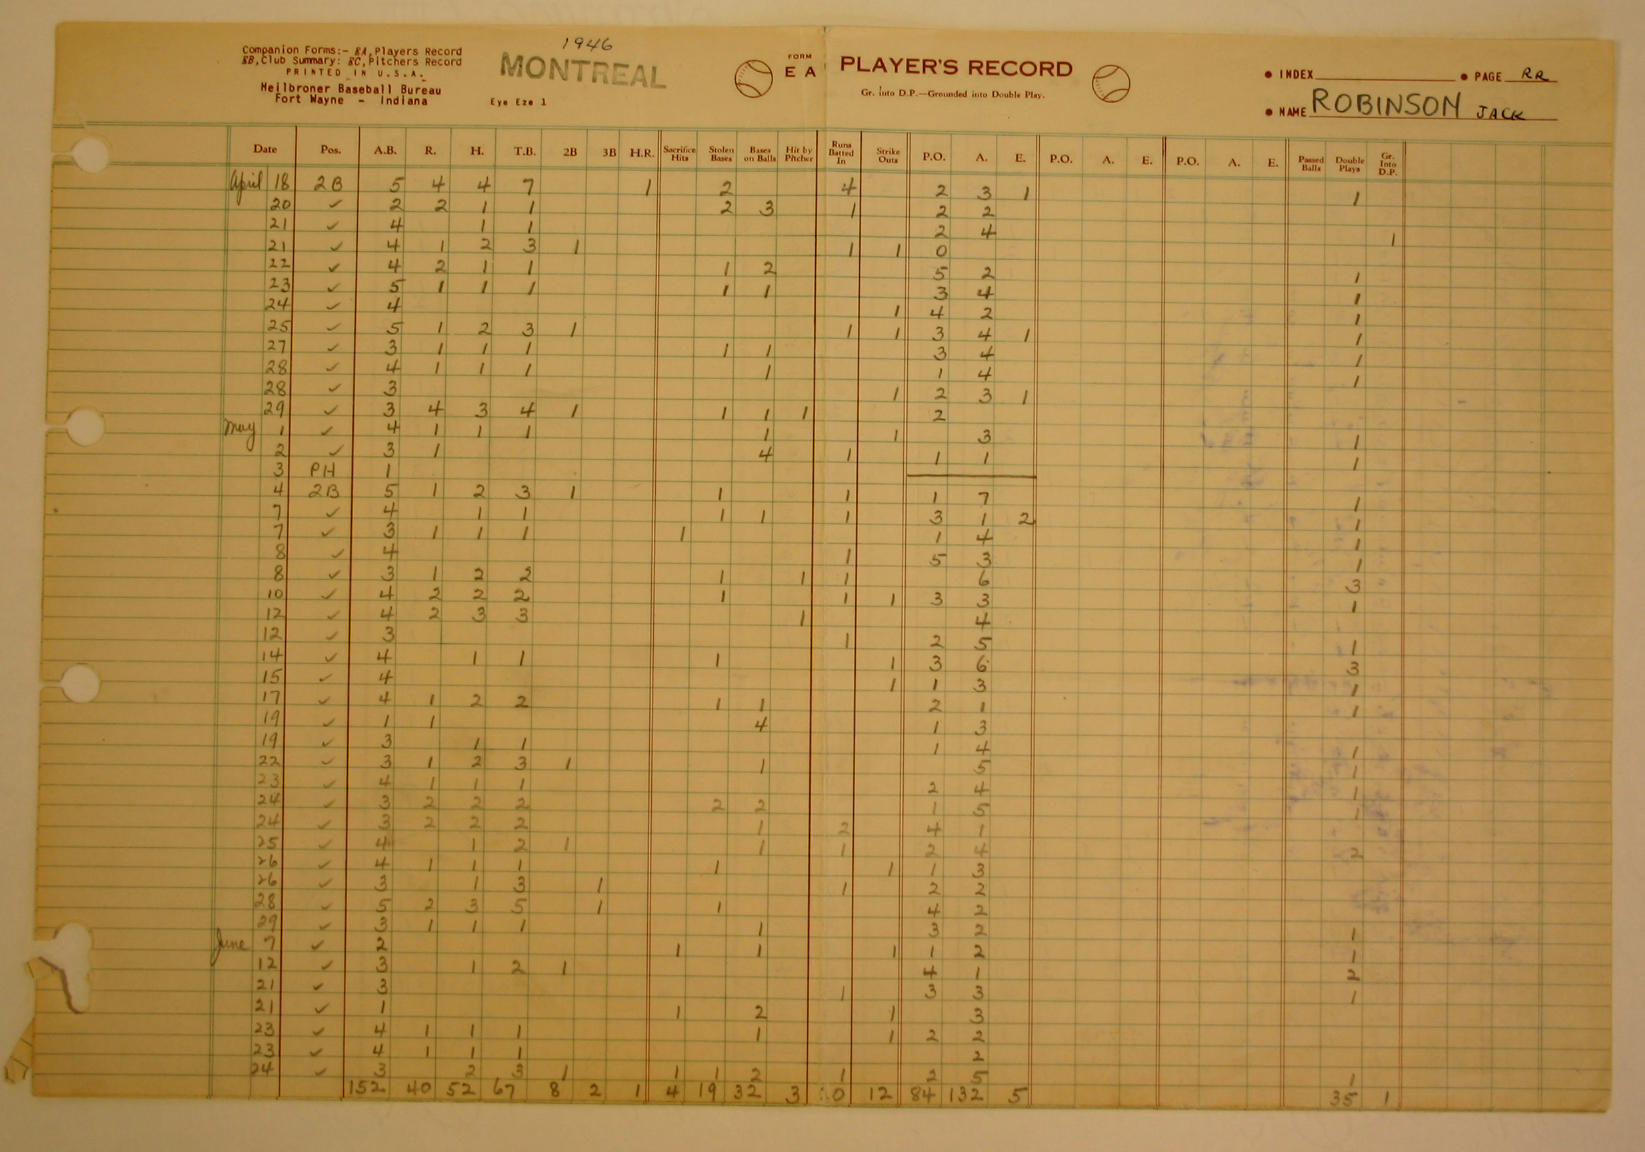 Jackie Robinson's day-by-day stats for 1946 with the Montreal Royals. - BL-349-2006.30 (National Baseball Hall of Fame Library)